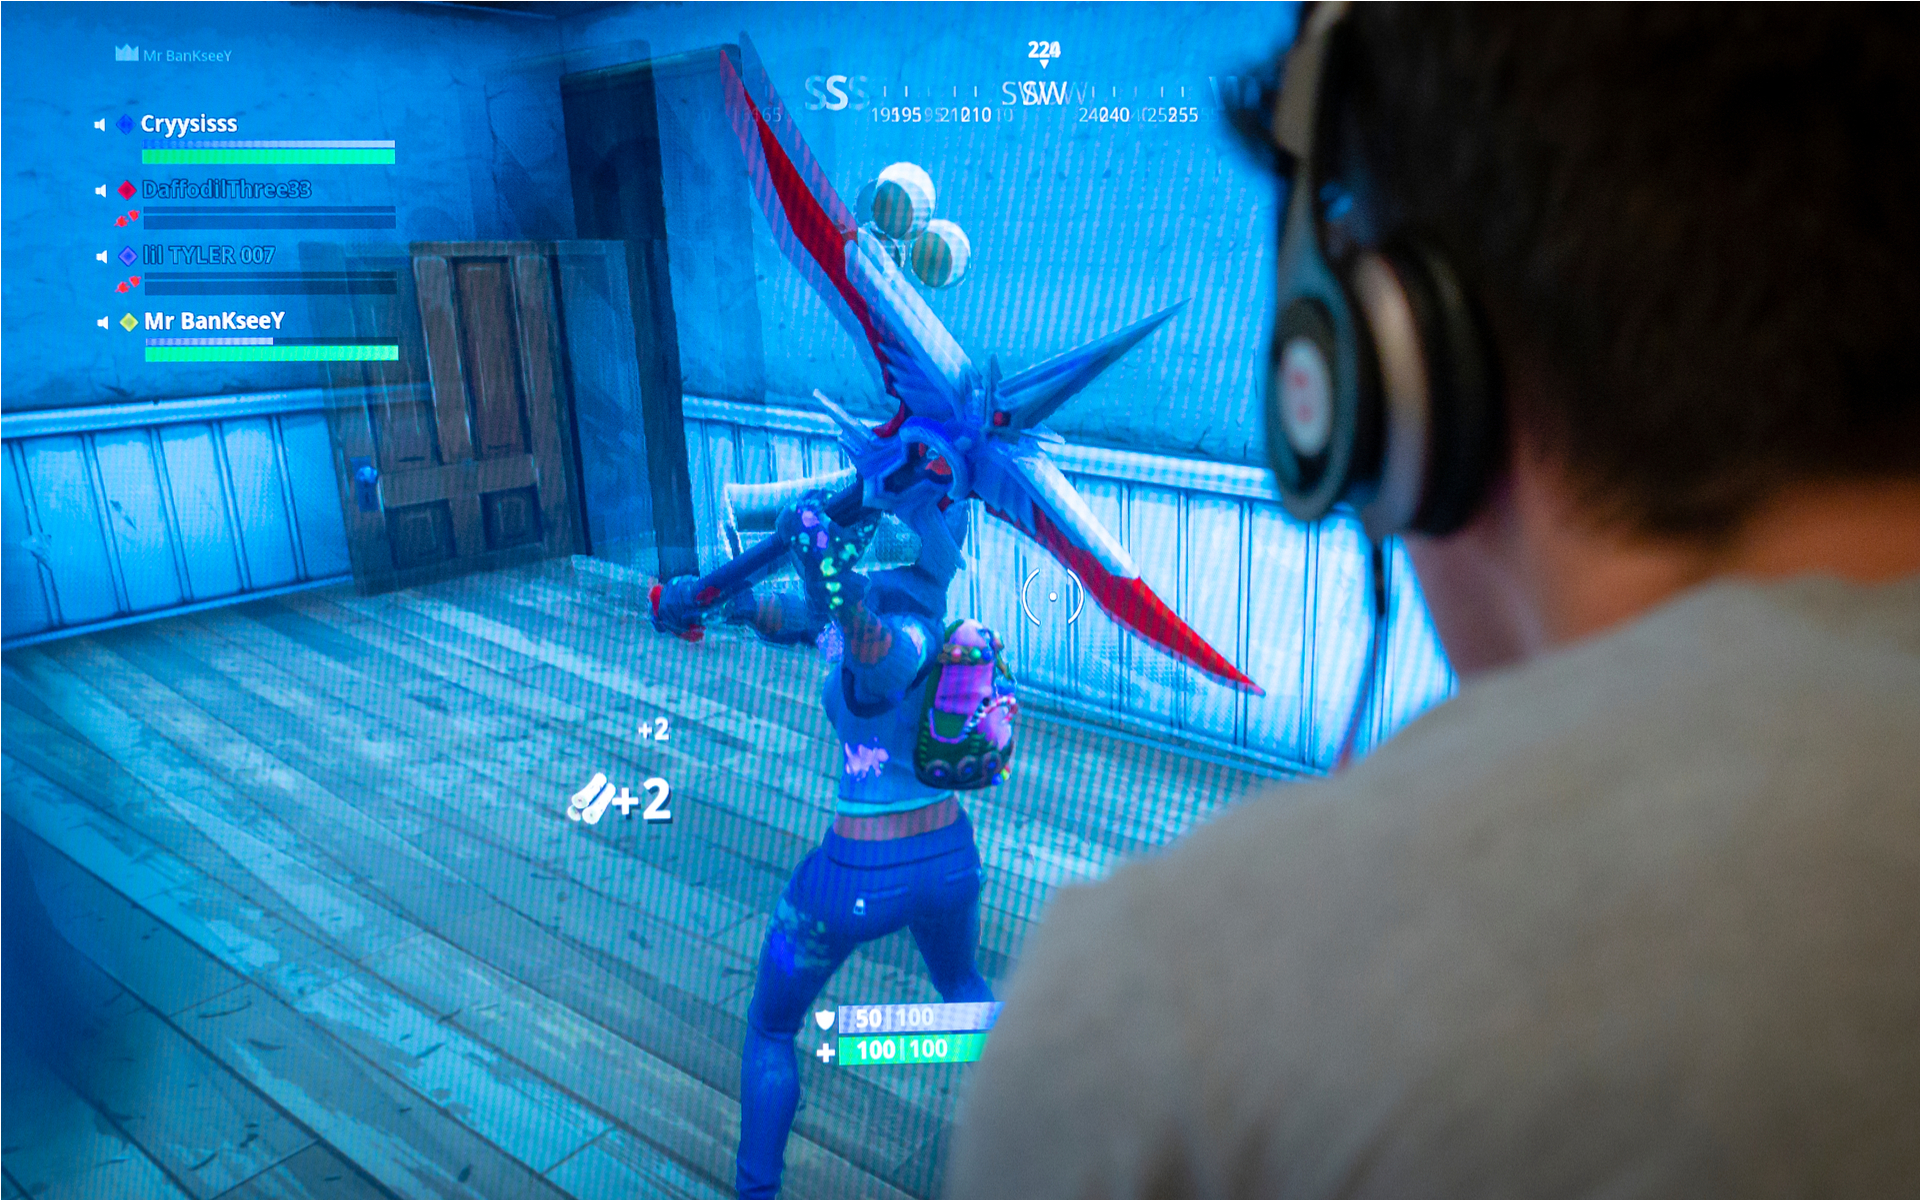 Fortnite Left Players Open to Account Hijacking, Voice Chat Eavesdropping